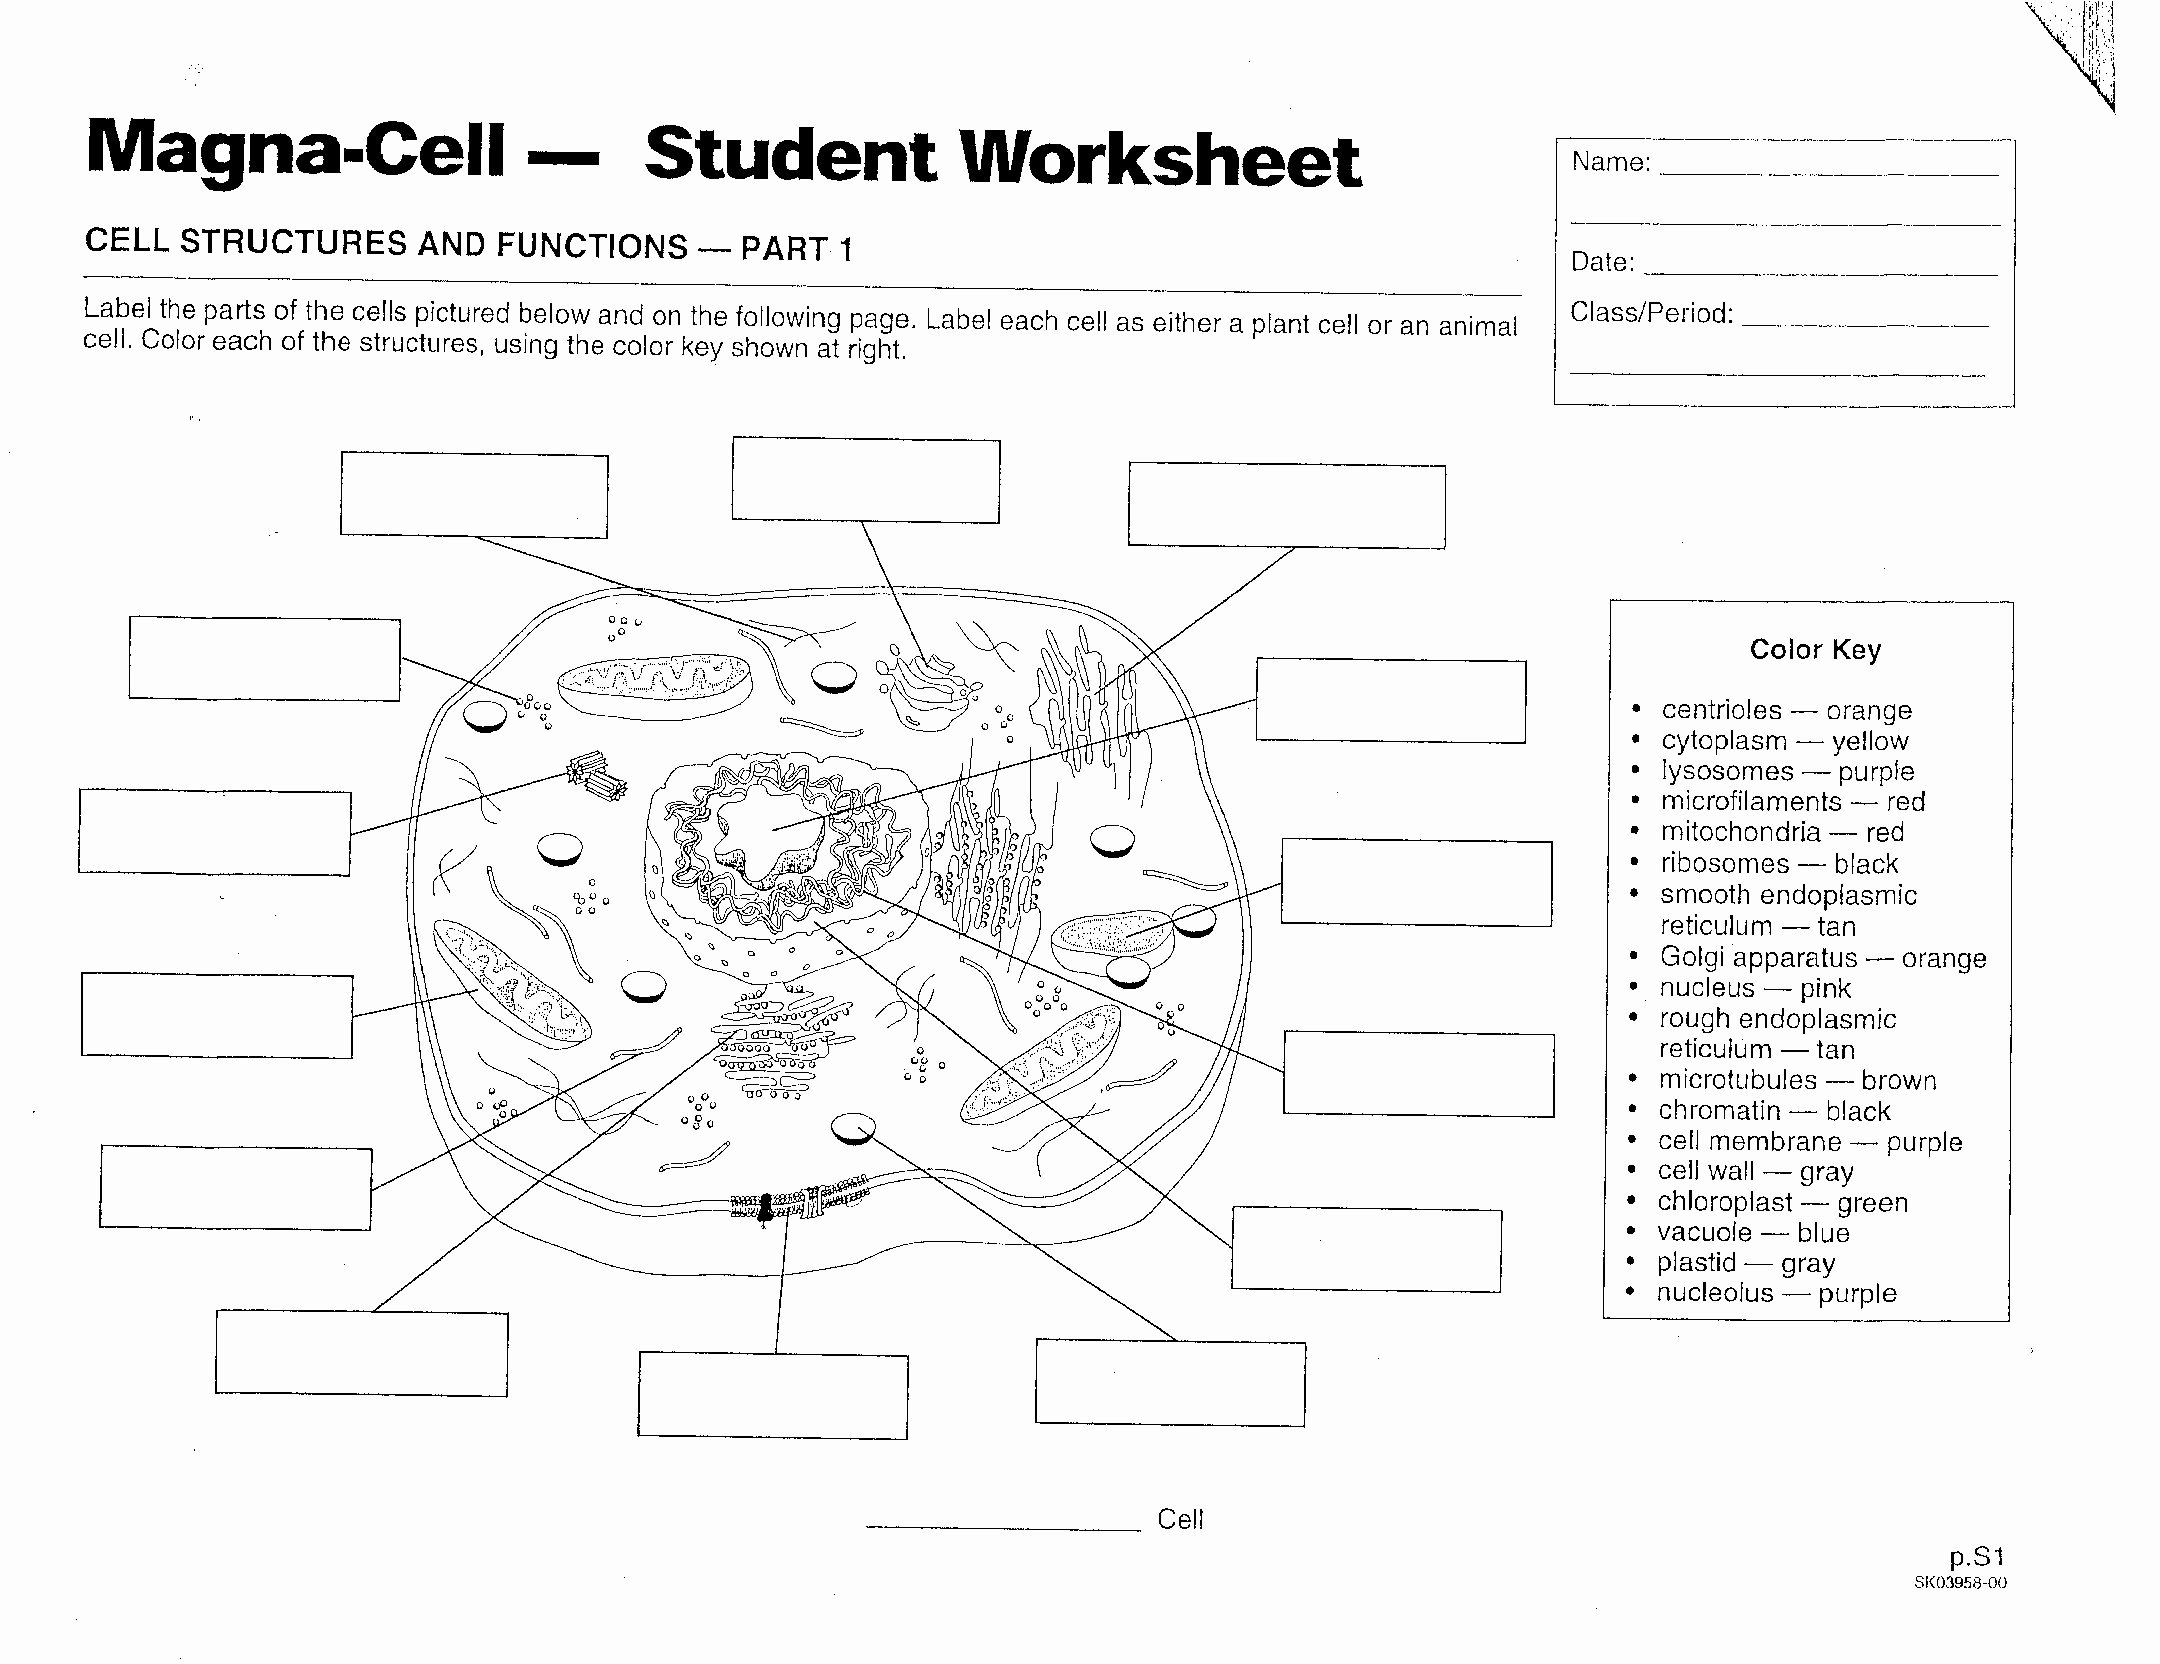 Prokaryotes Vs Eukaryotes Worksheet Elegant Cells Mrs Musto 7th Grade Life Science